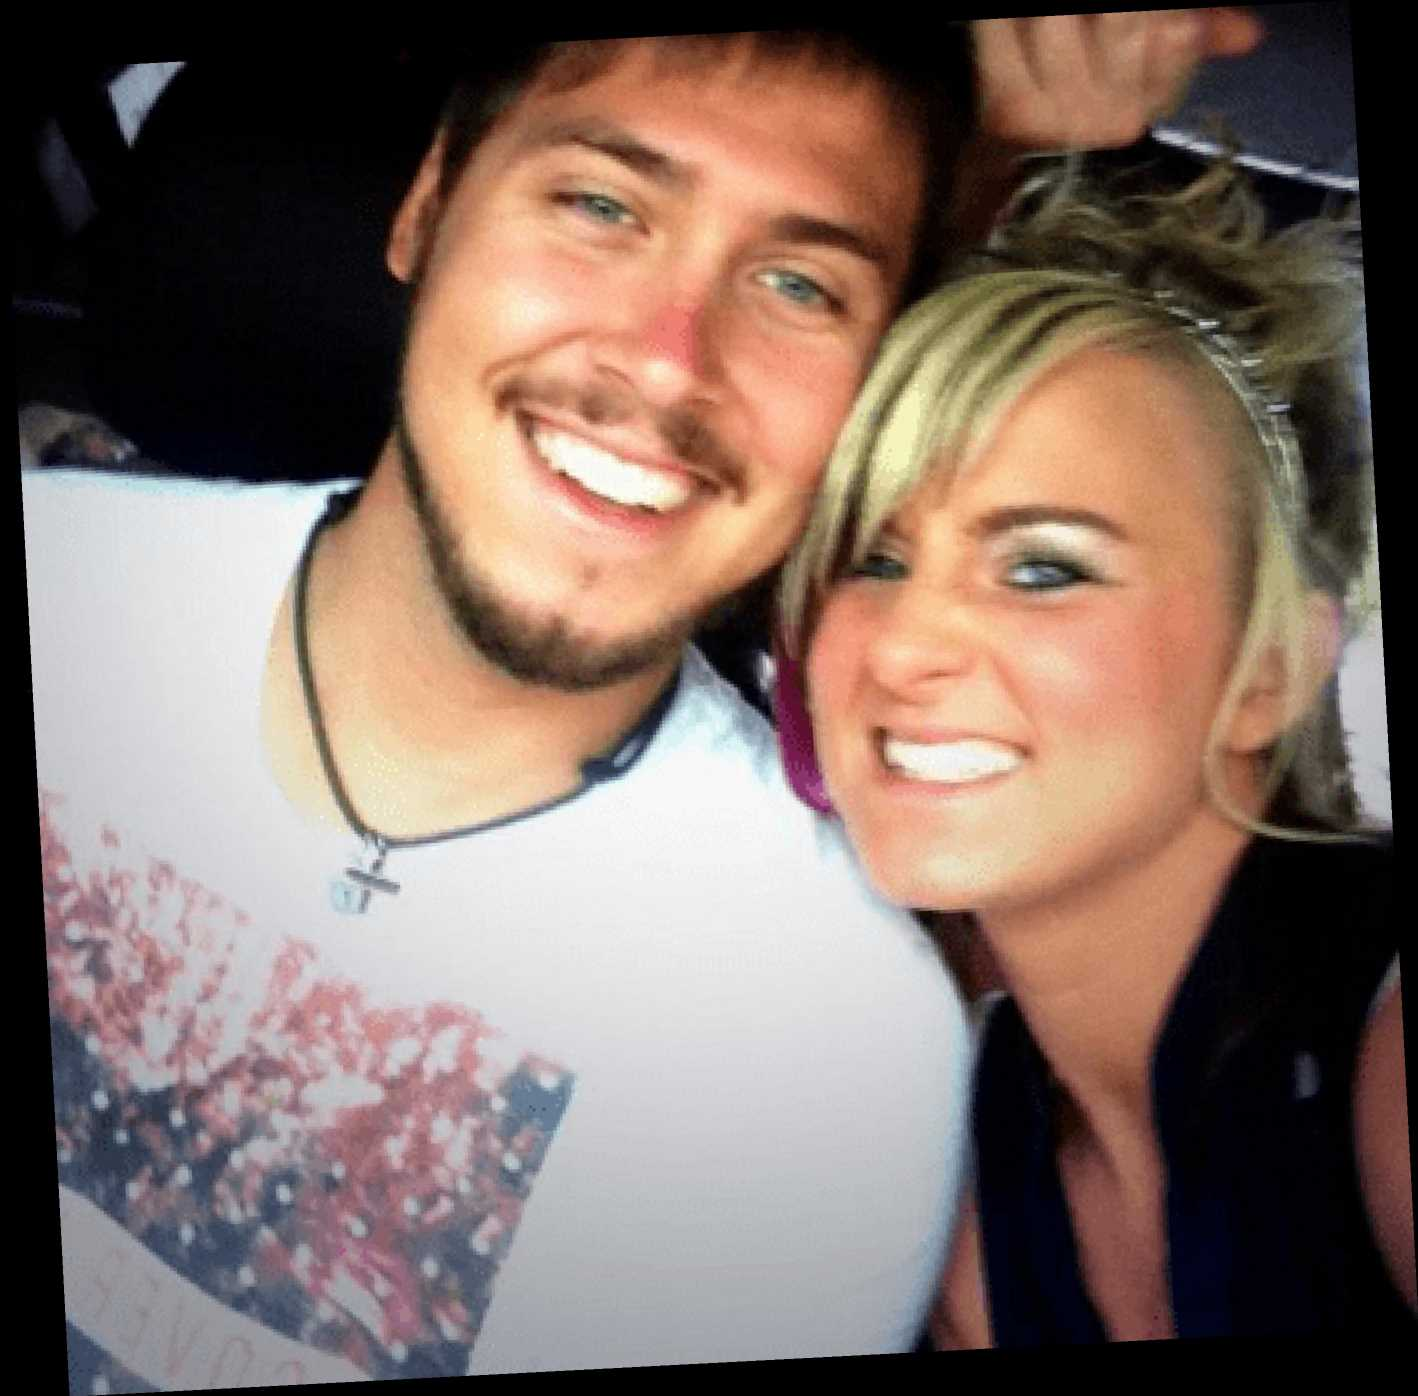 Teen Mom 2's Leah Messer Says She Wants to 'See If the Spark Is Still There' with Ex Jeremy Calvert